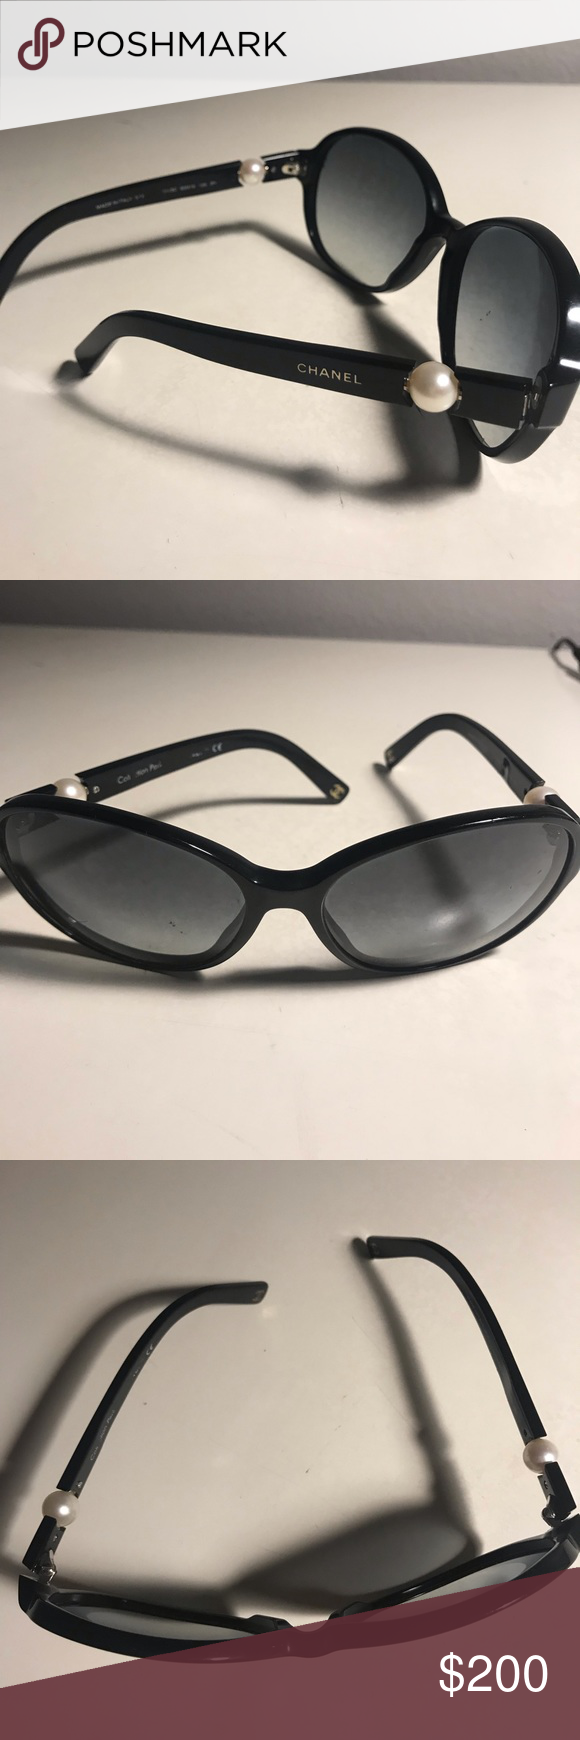 54f96df92ee Authentic Chanel sunglasses Authentic Chanel sunglasses -Pearl collection  Some scratches CHANEL Accessories Glasses